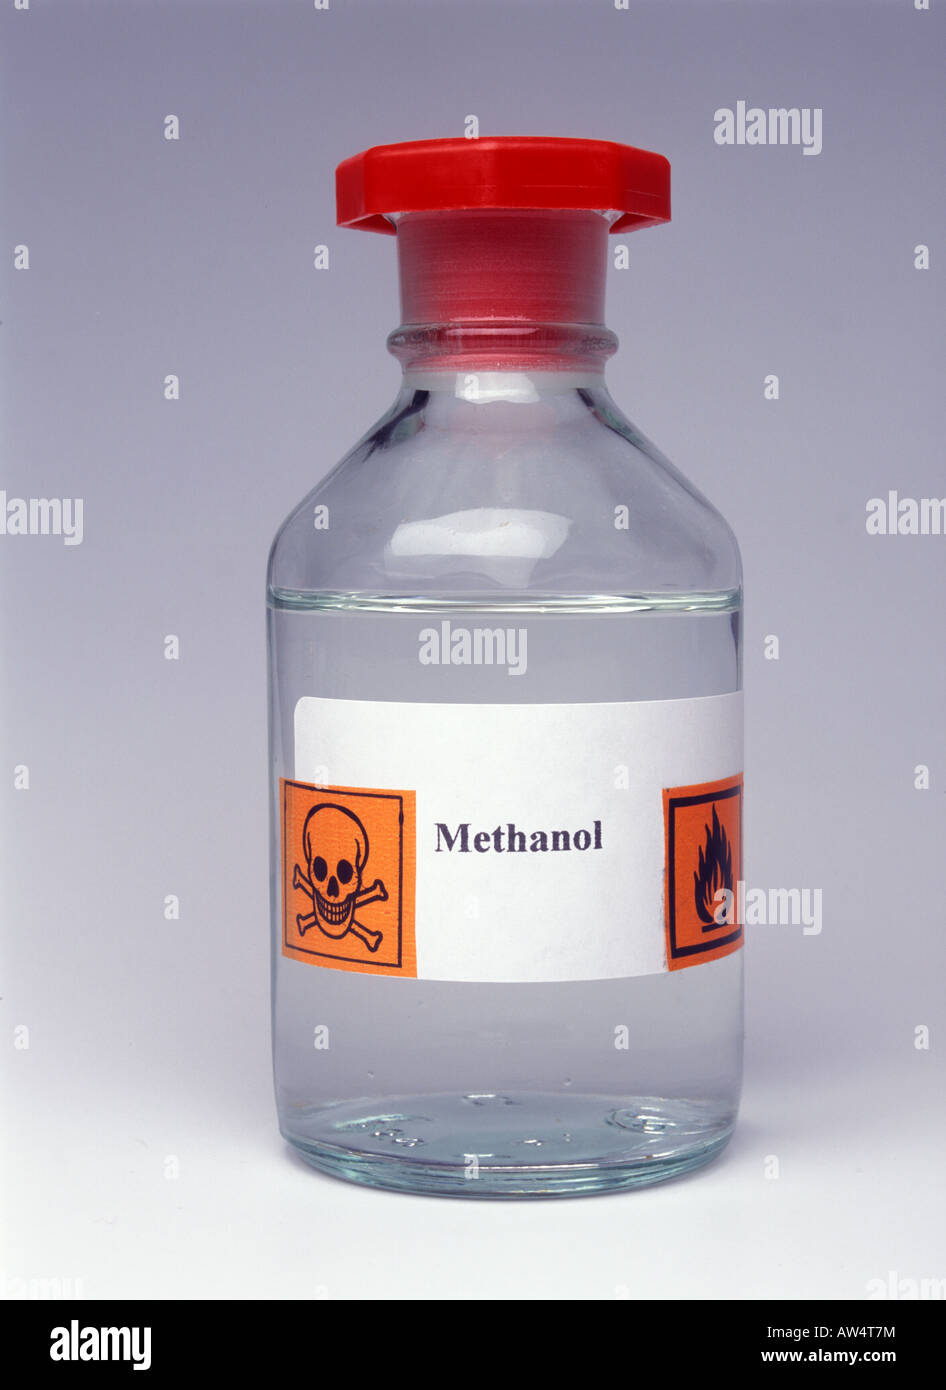 bottle of methanol with hazard labels stock photo 16465879 alamy